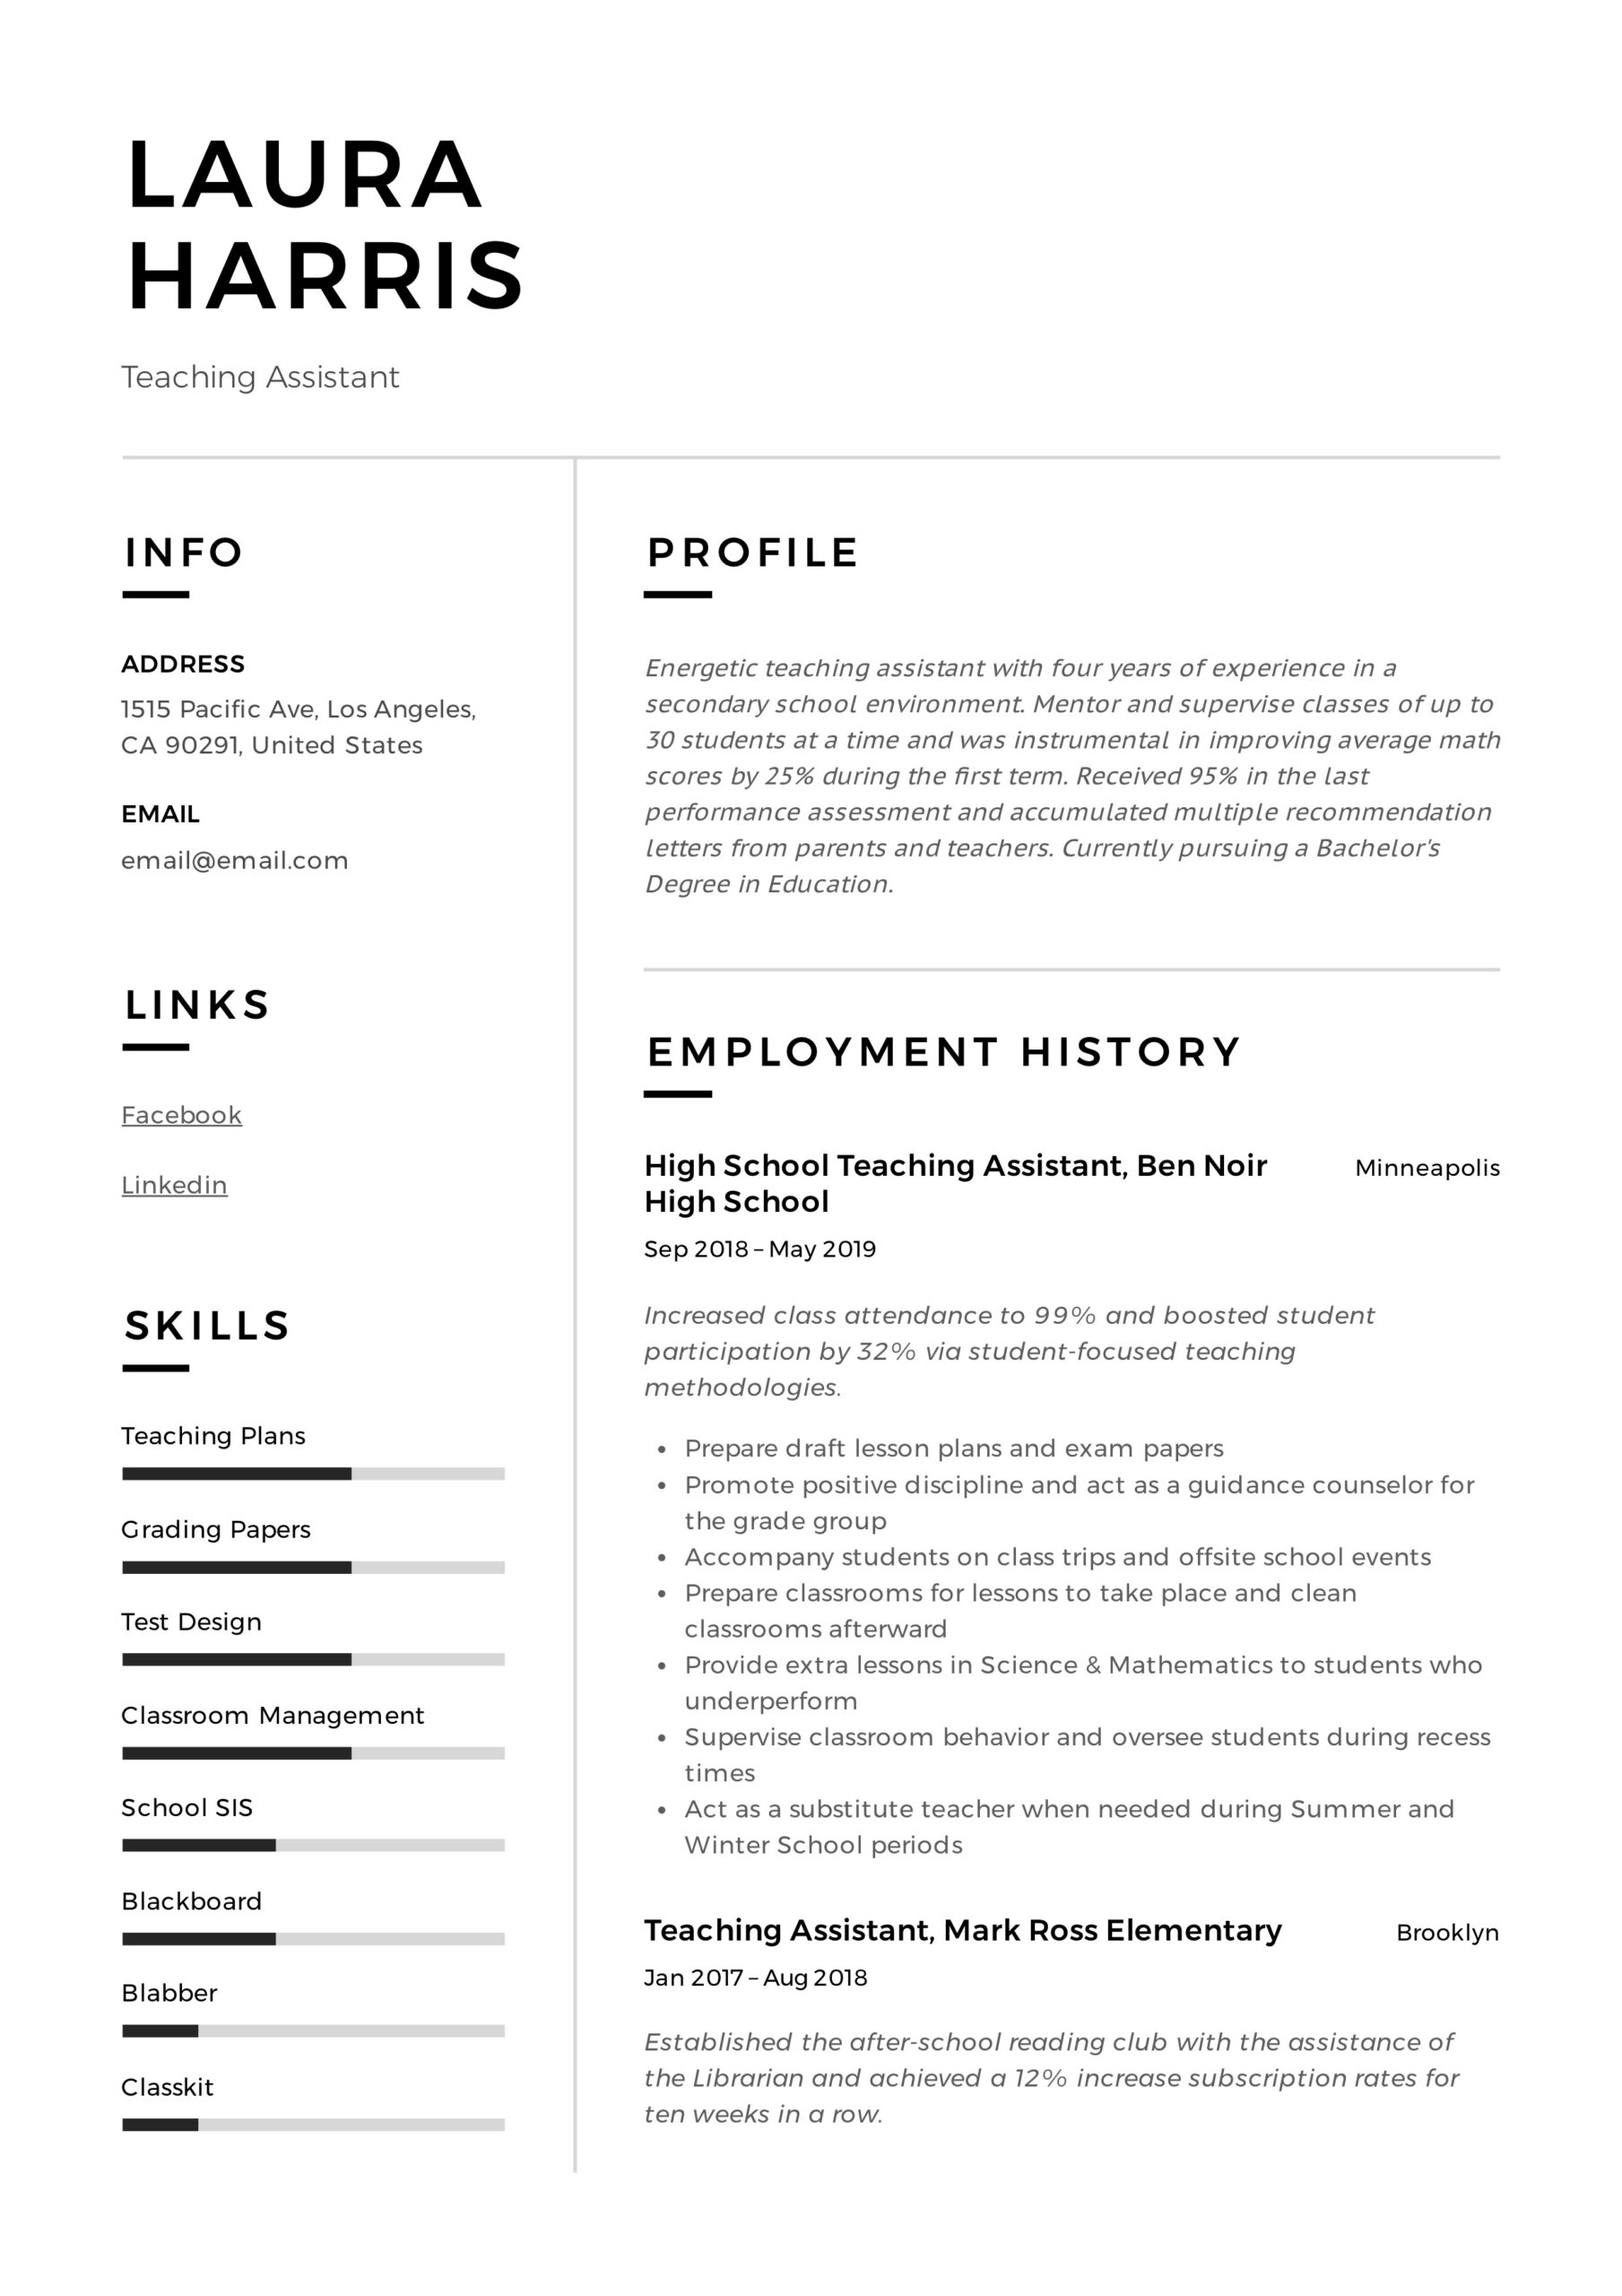 teaching assistant resume writing guide templates pdf teacher skills template publisher Resume Teacher Assistant Resume Skills